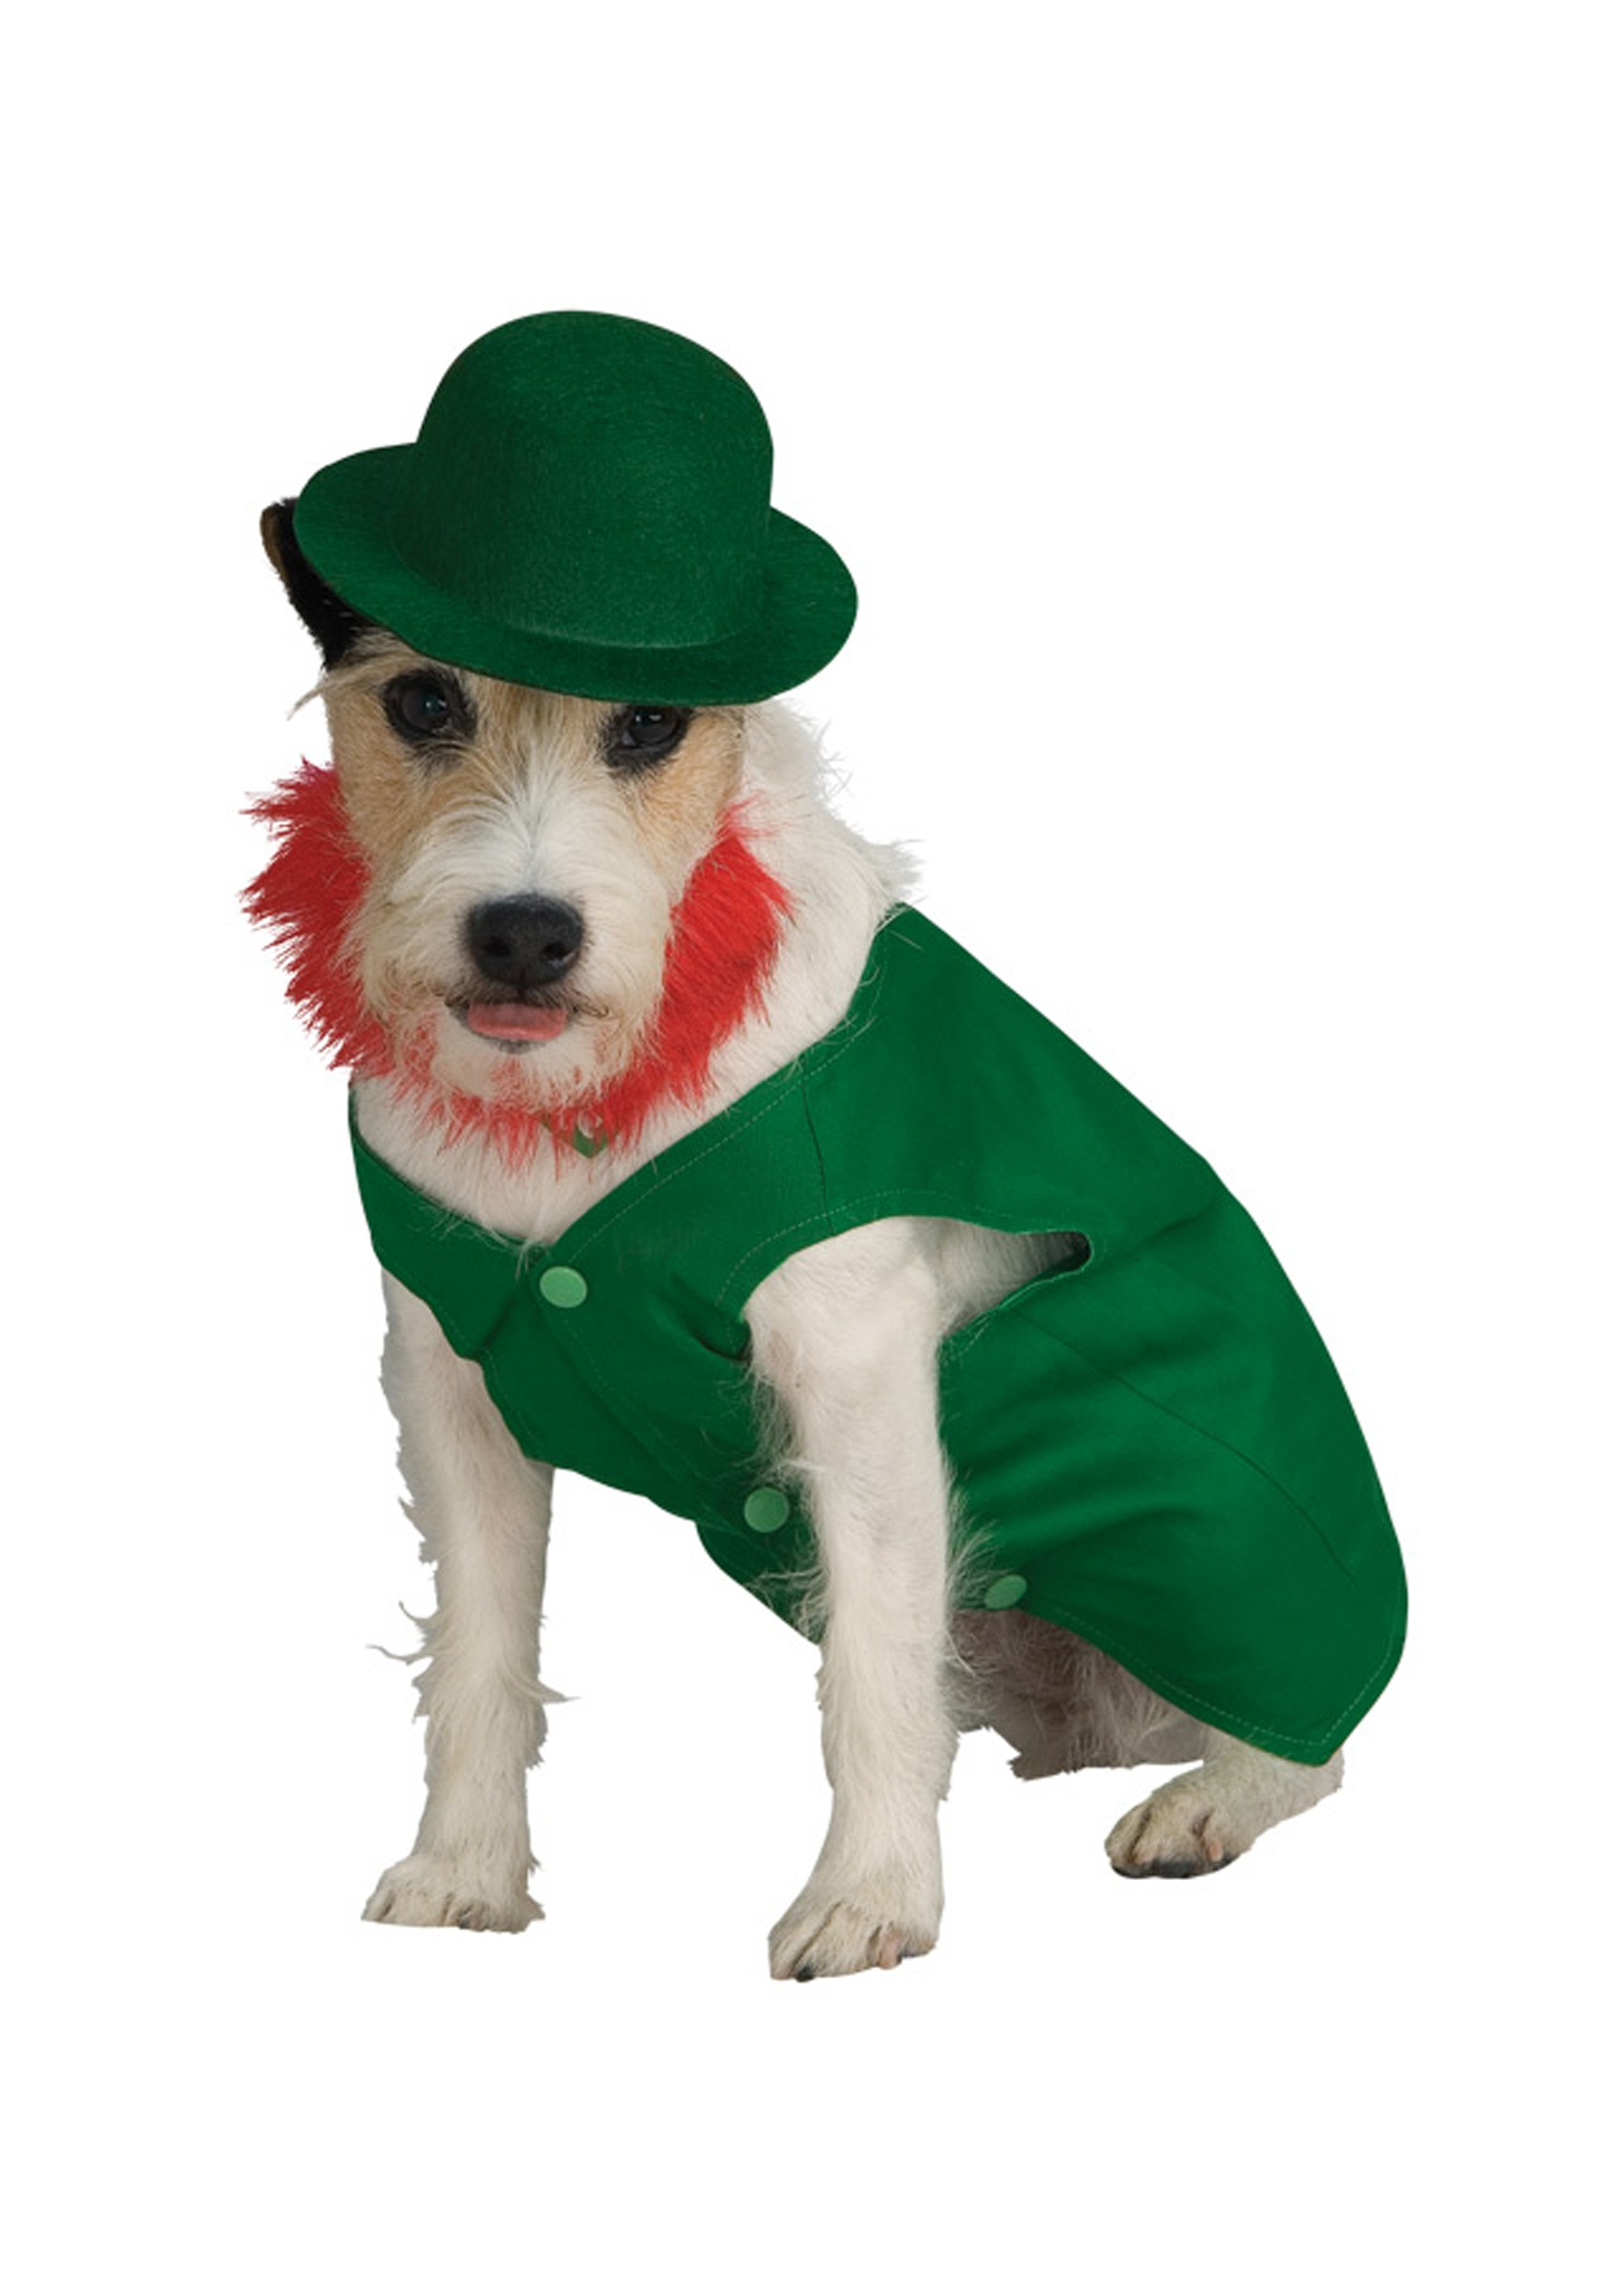 Leprechaun pet costume altavistaventures Gallery